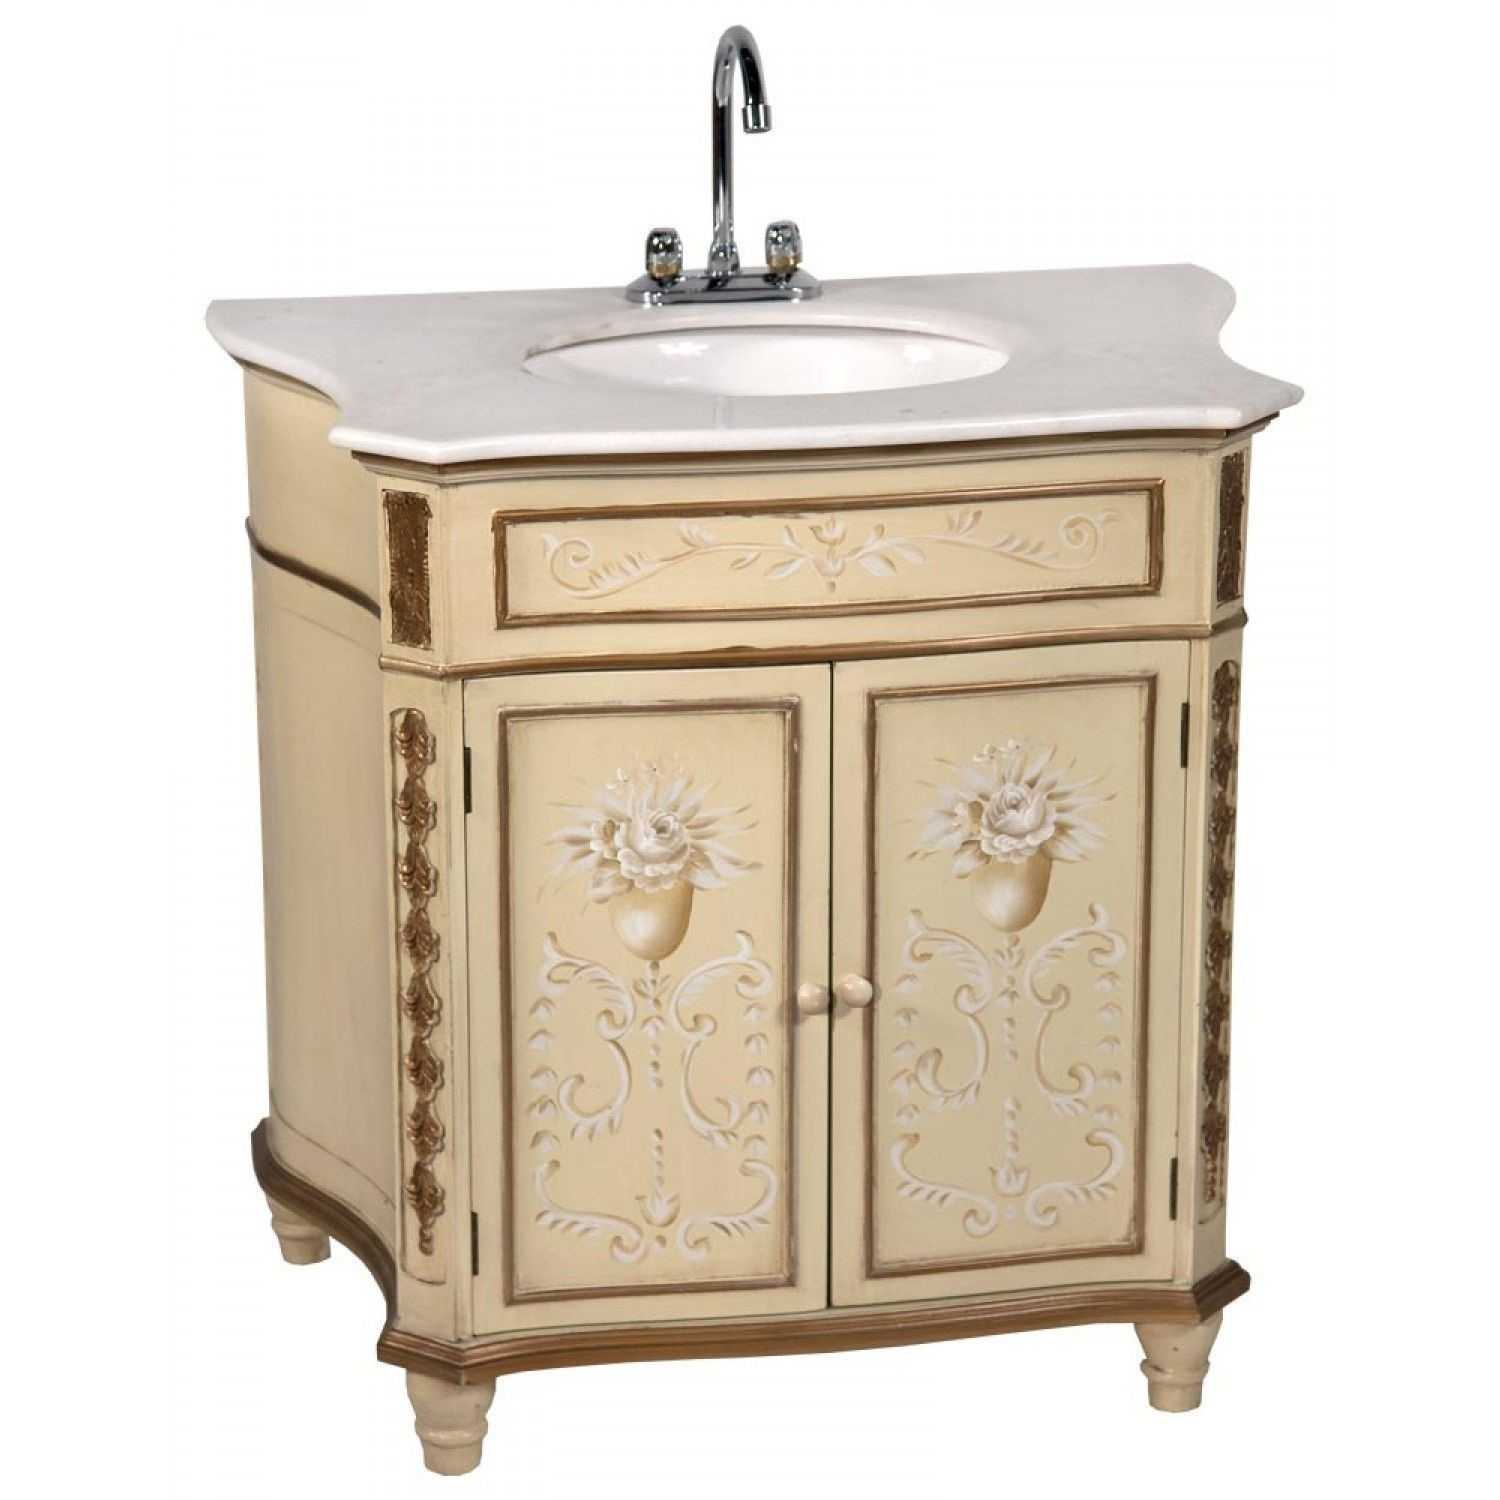 Painted rosasea summer vintage style vanity bathroom sink cabinet for Bathroom vanities vintage style